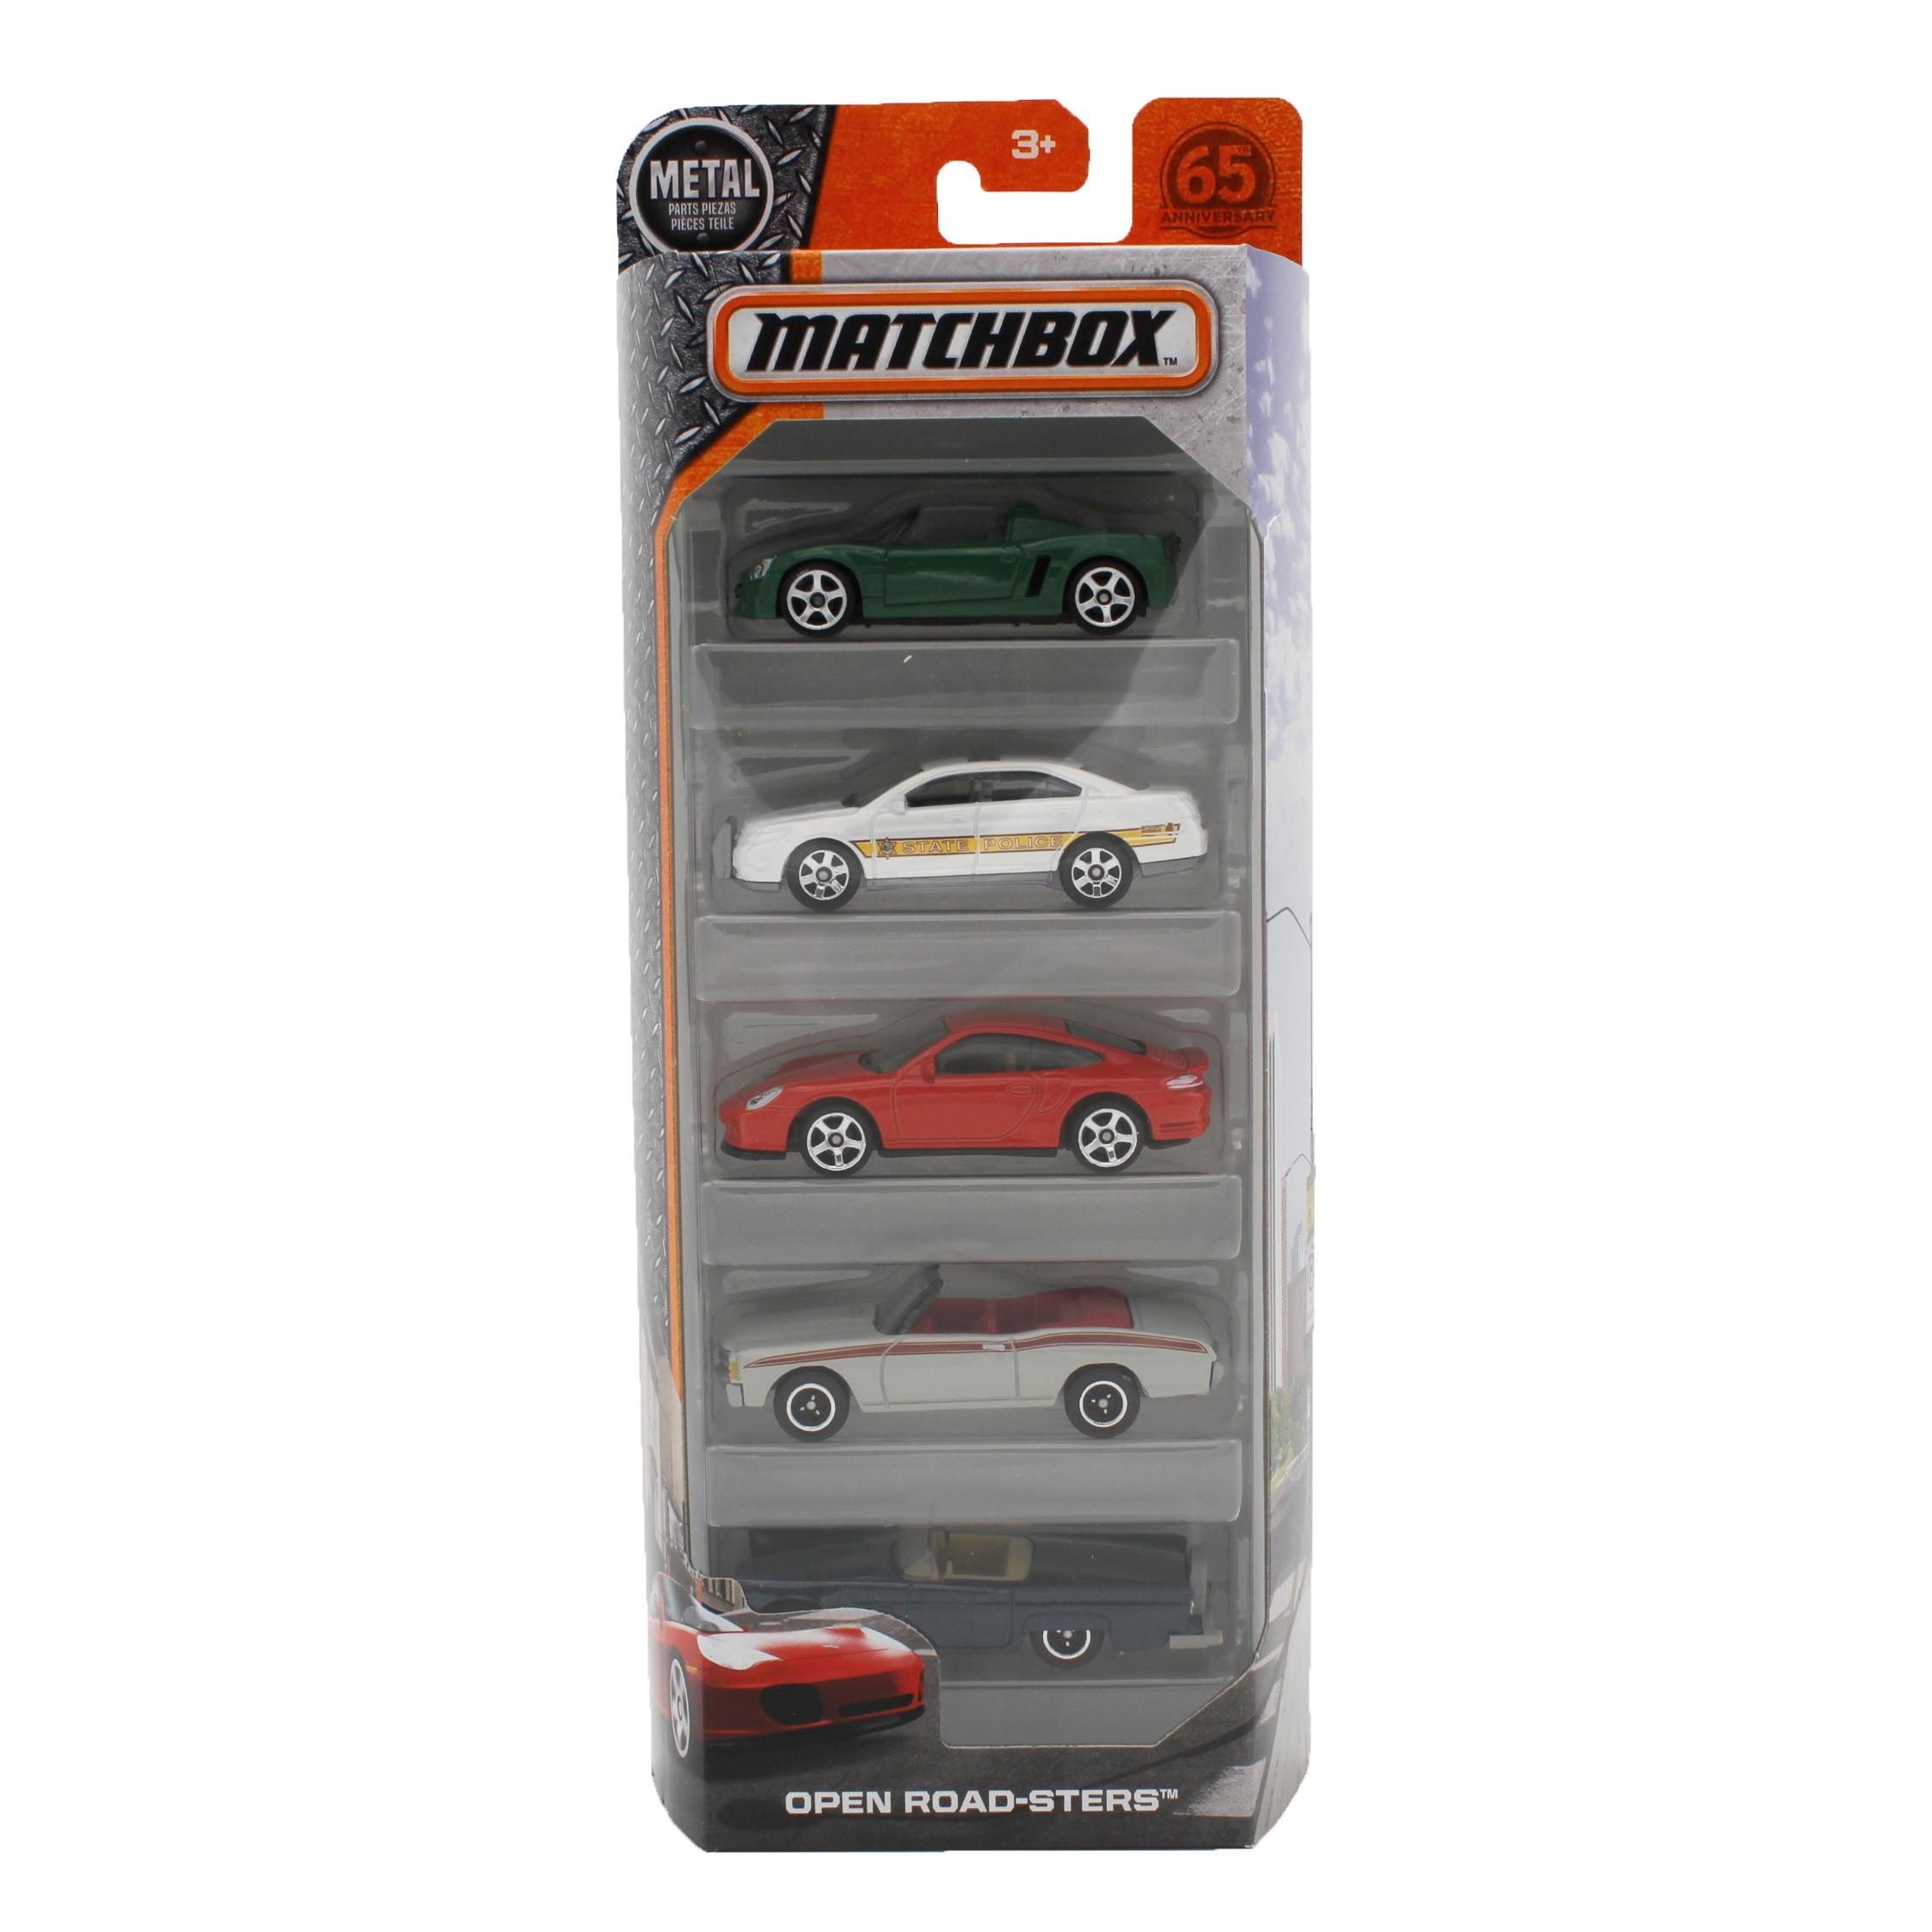 Matchbox Open Road-Sters 5-Pack by Mattel